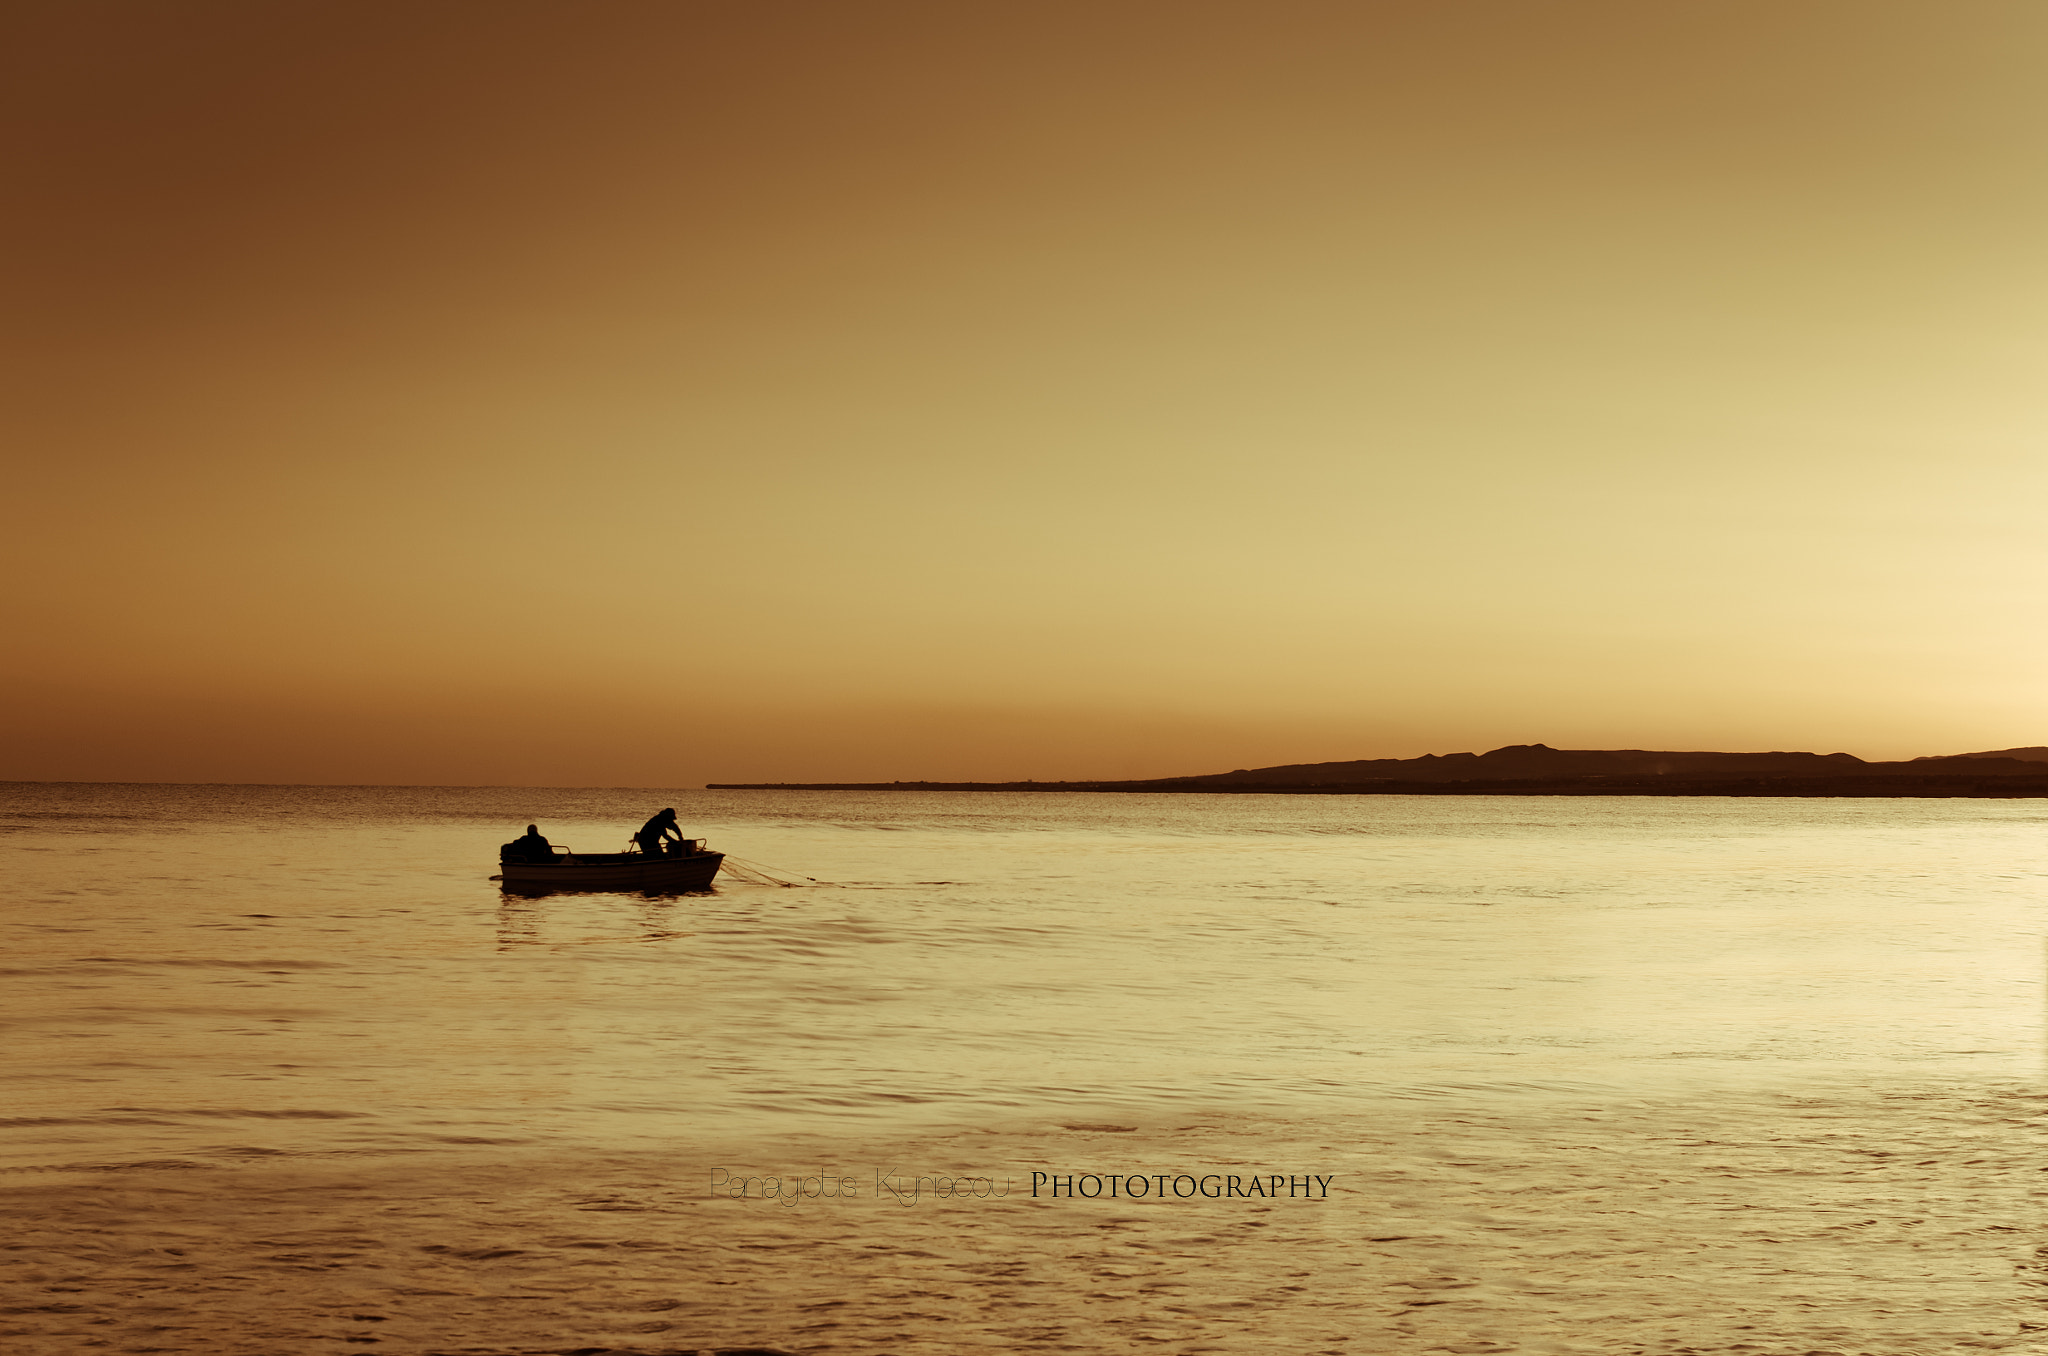 Photograph Fishing for gold by Panayiotis Kyriacou on 500px